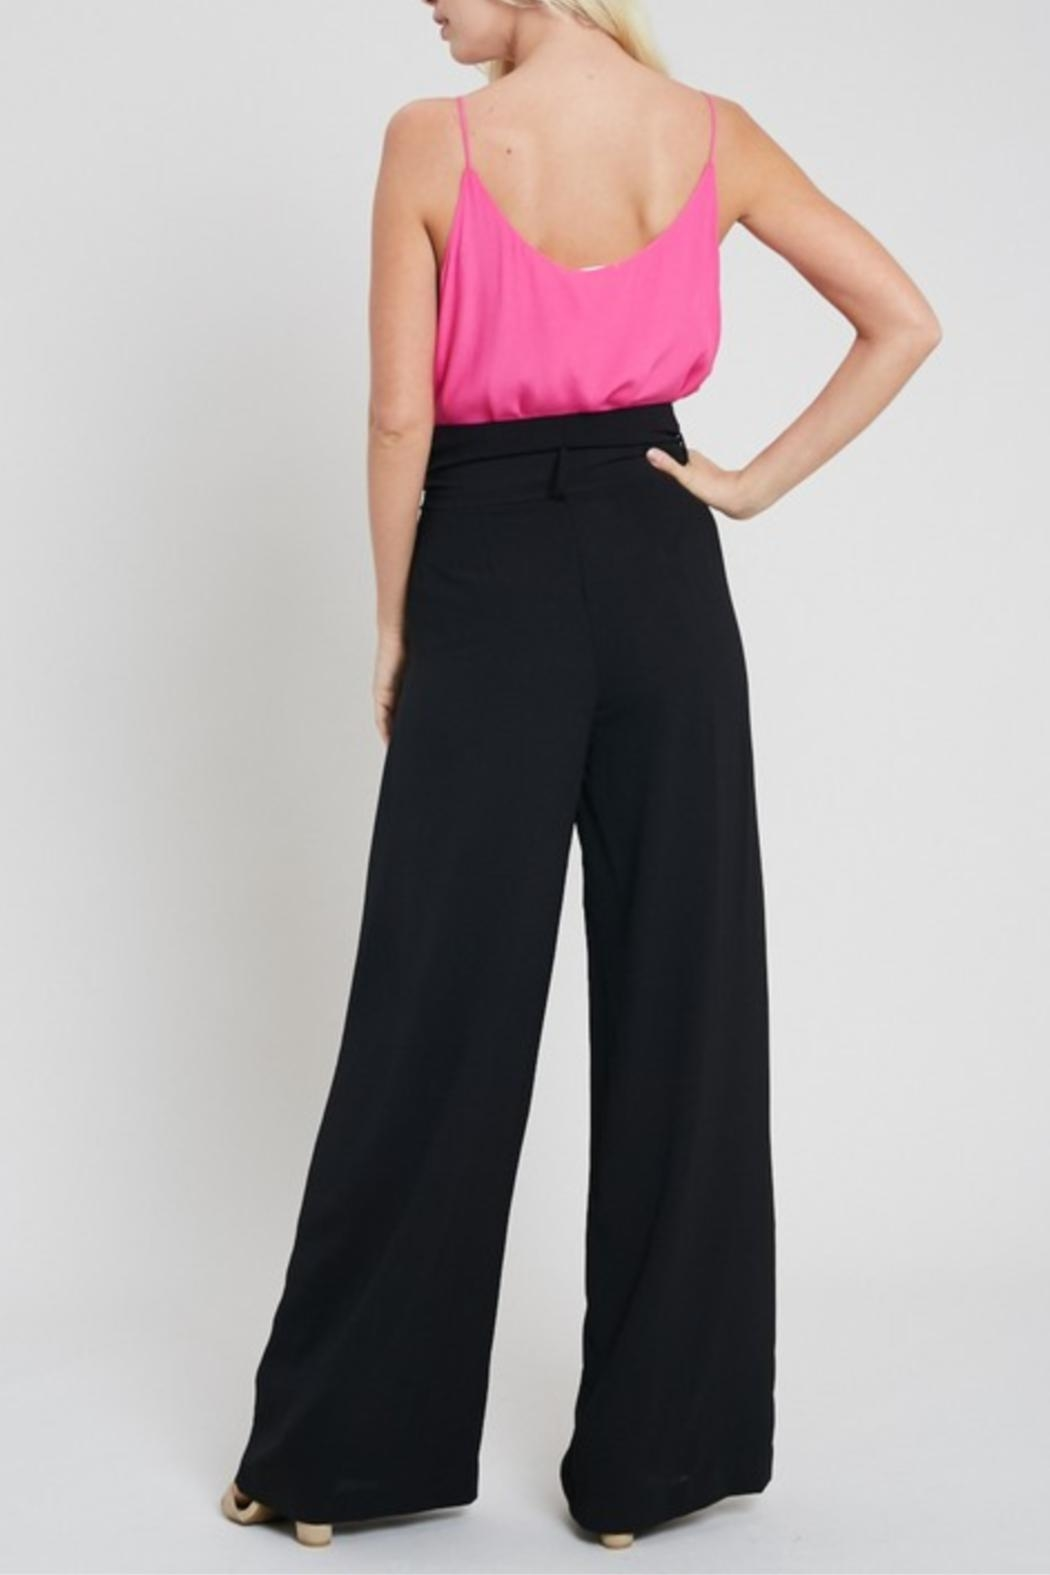 eesome Black Dress Pants - Side Cropped Image